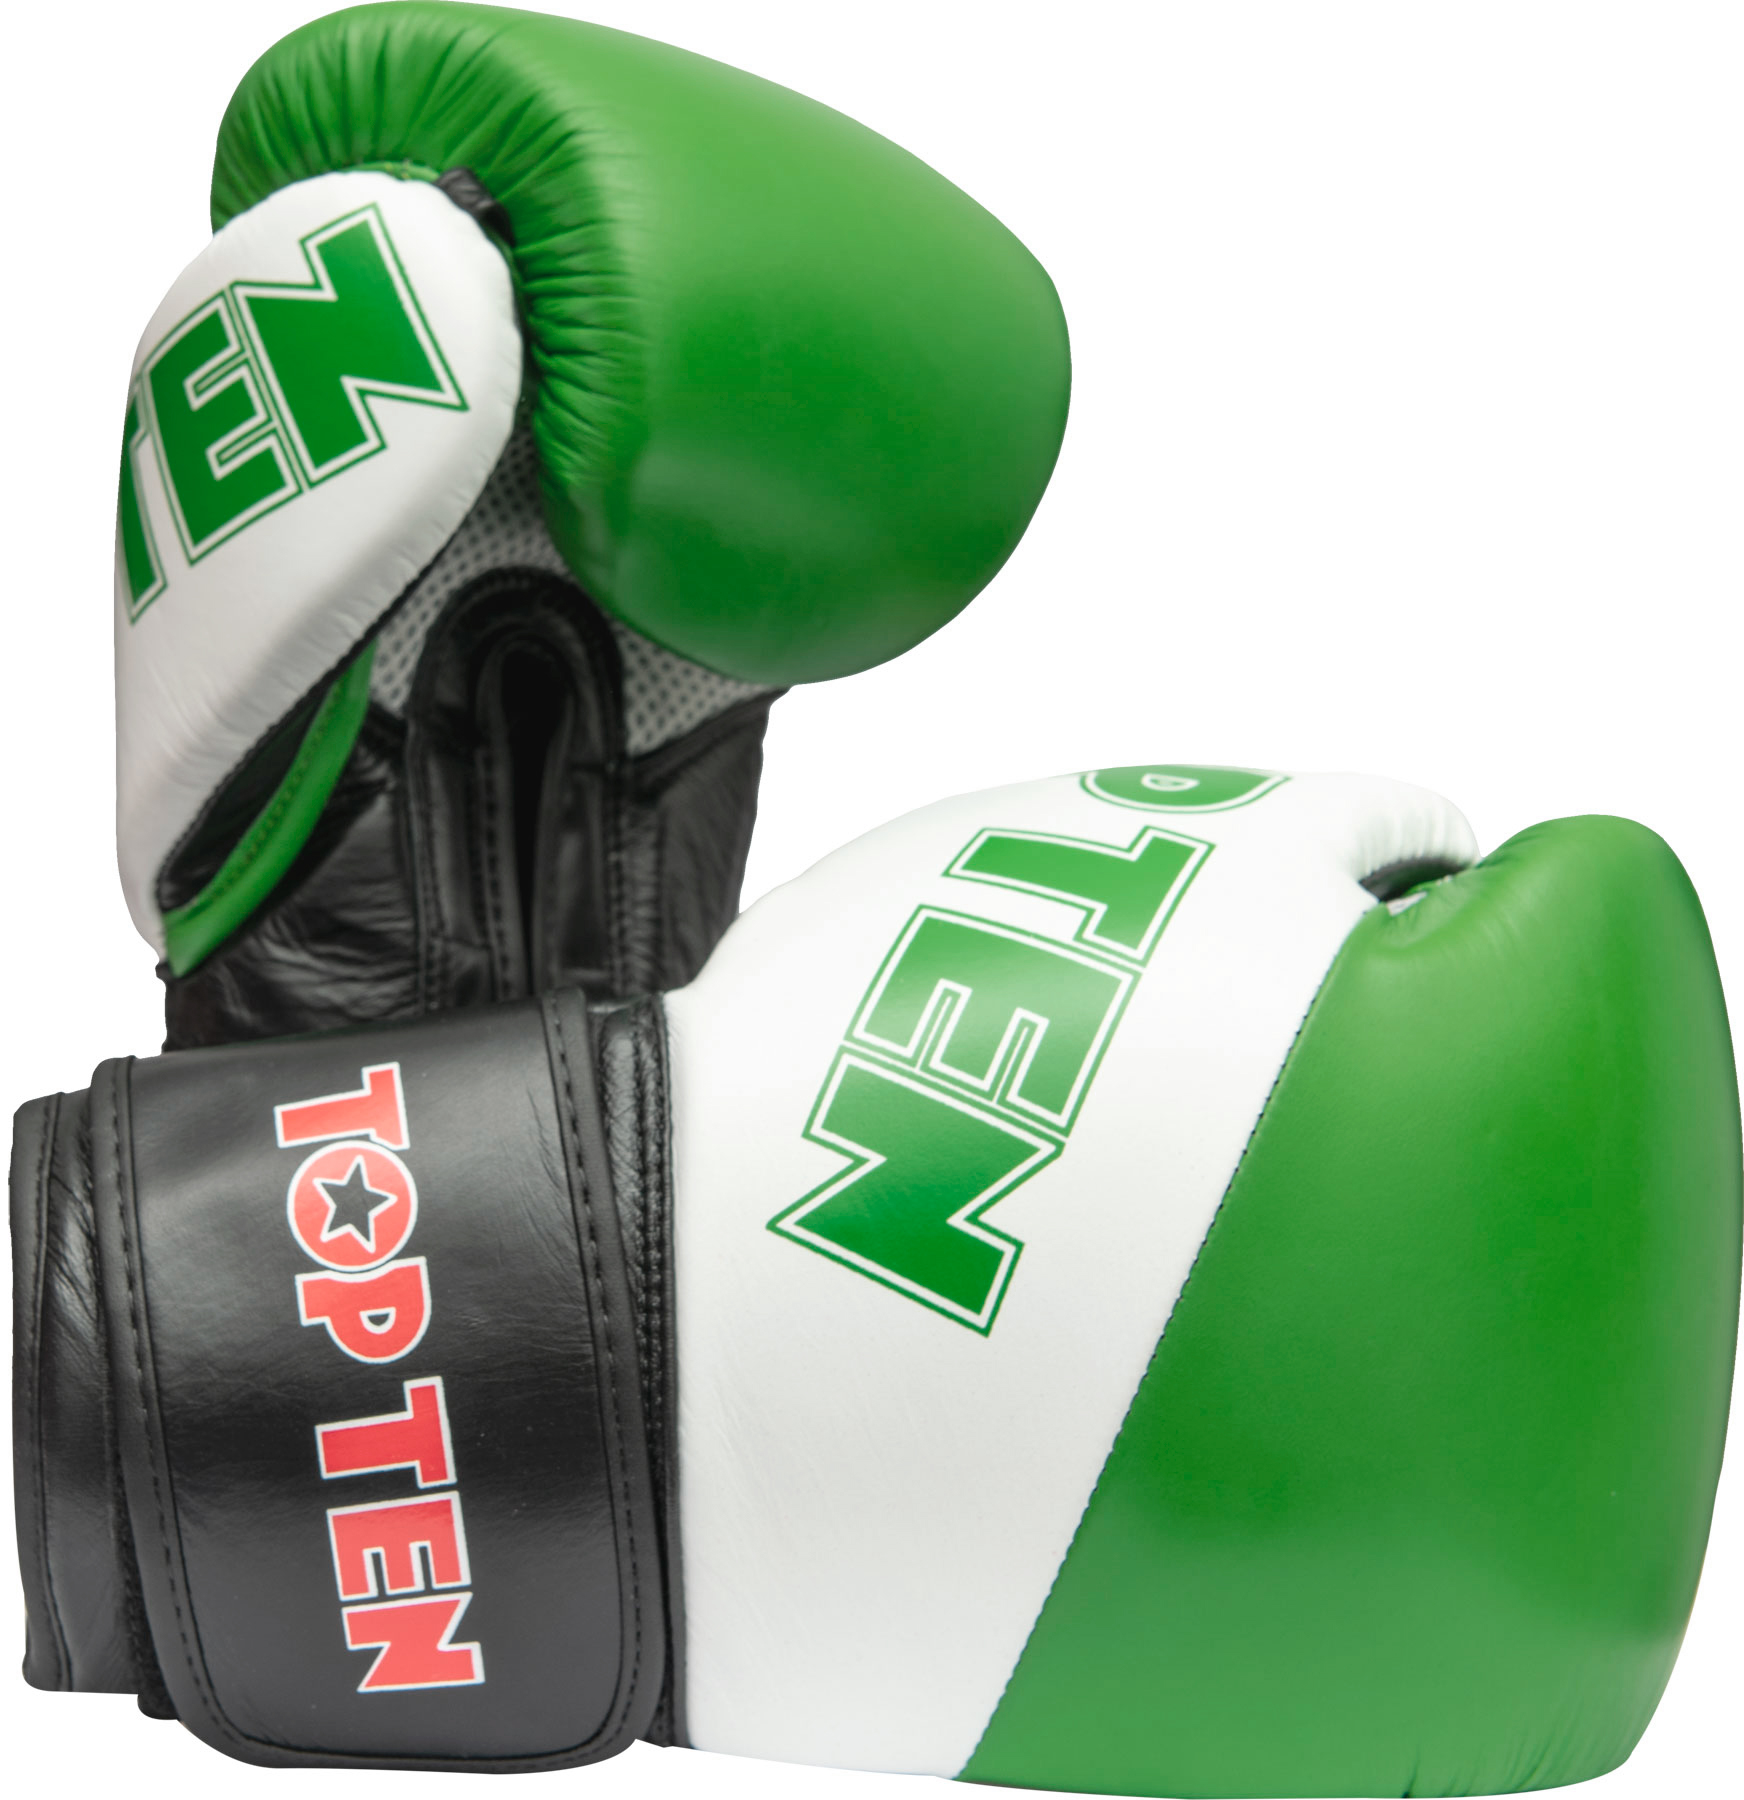 top-ten-boxing-gloves-sparring-x-2067-green_1_3